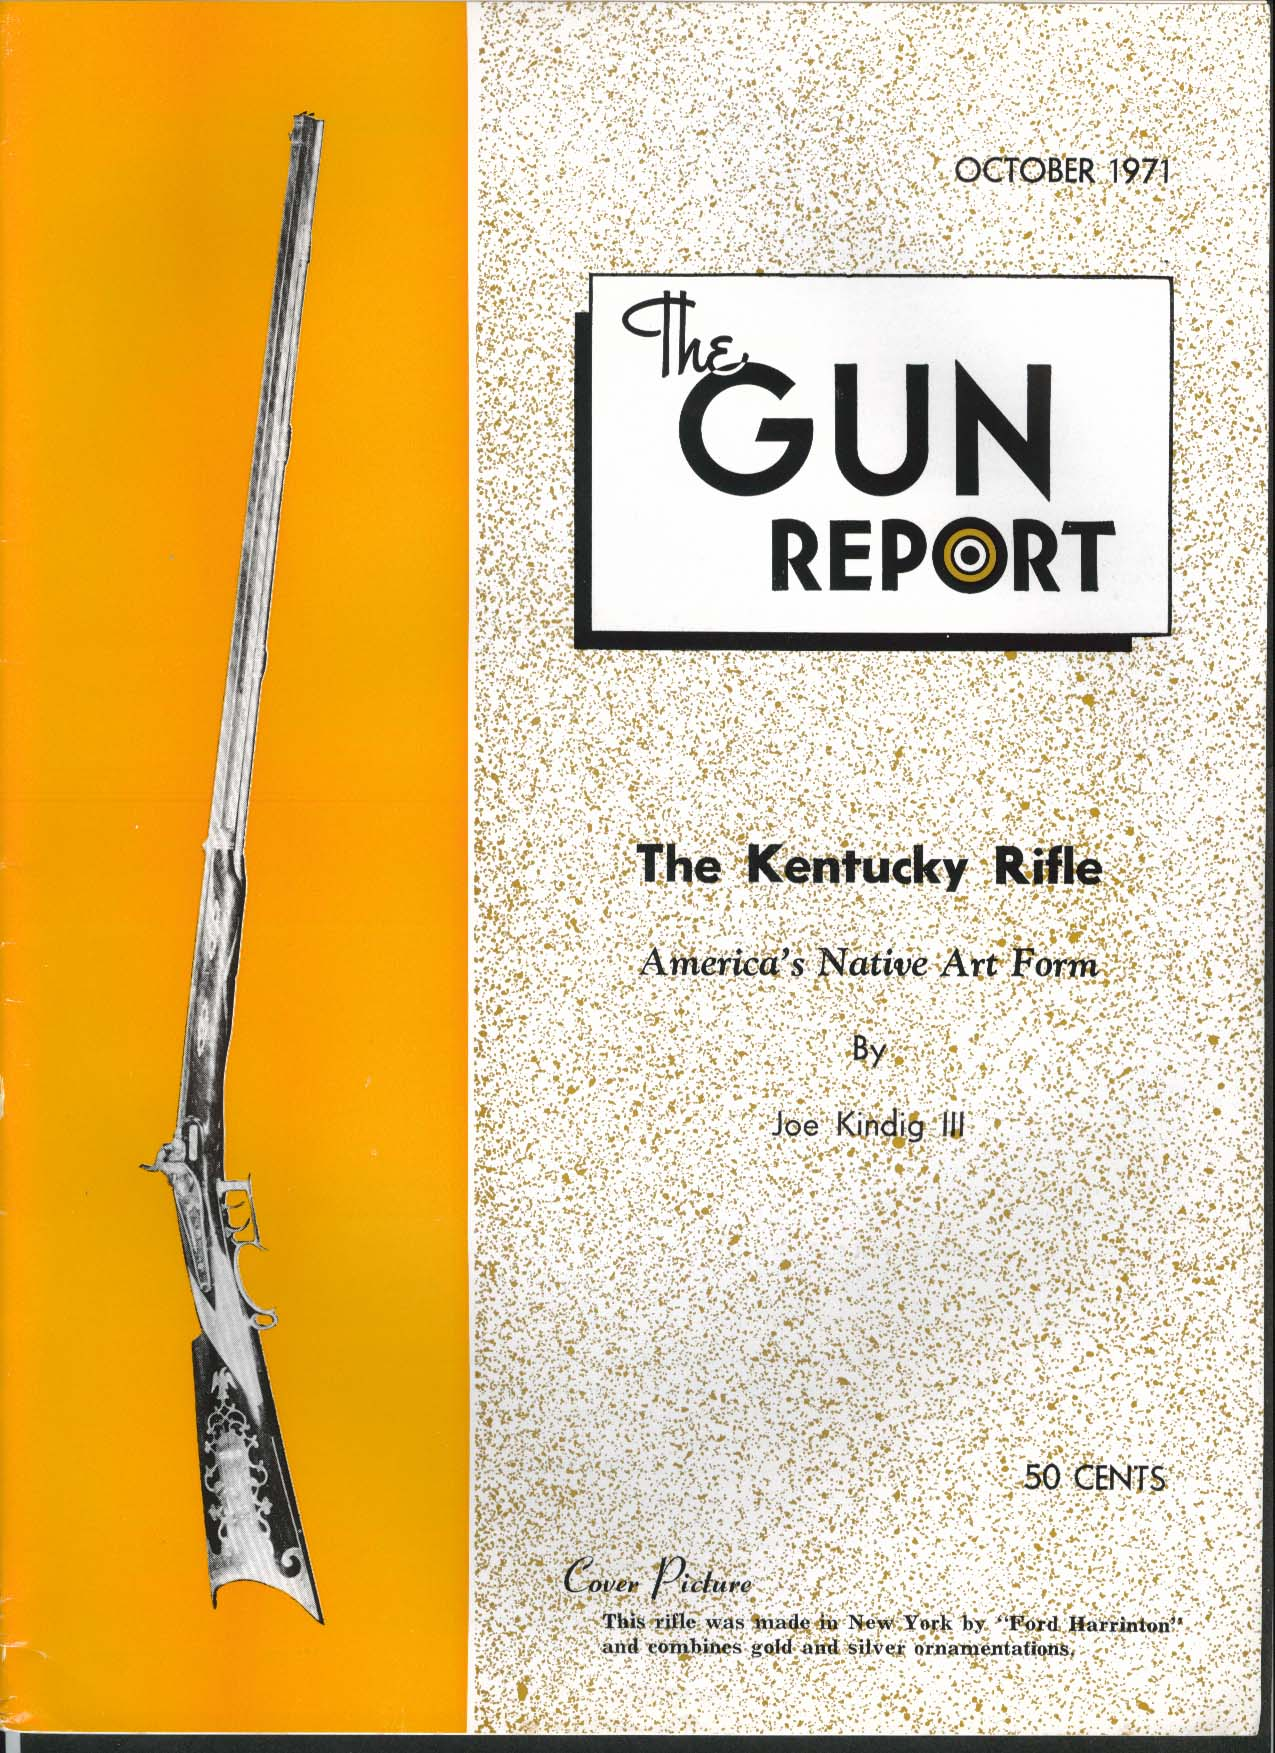 GUN REPORT Ford Harrinton Kentucky Rifle Franz Ulrich Joseph Wetherbee 10 1971